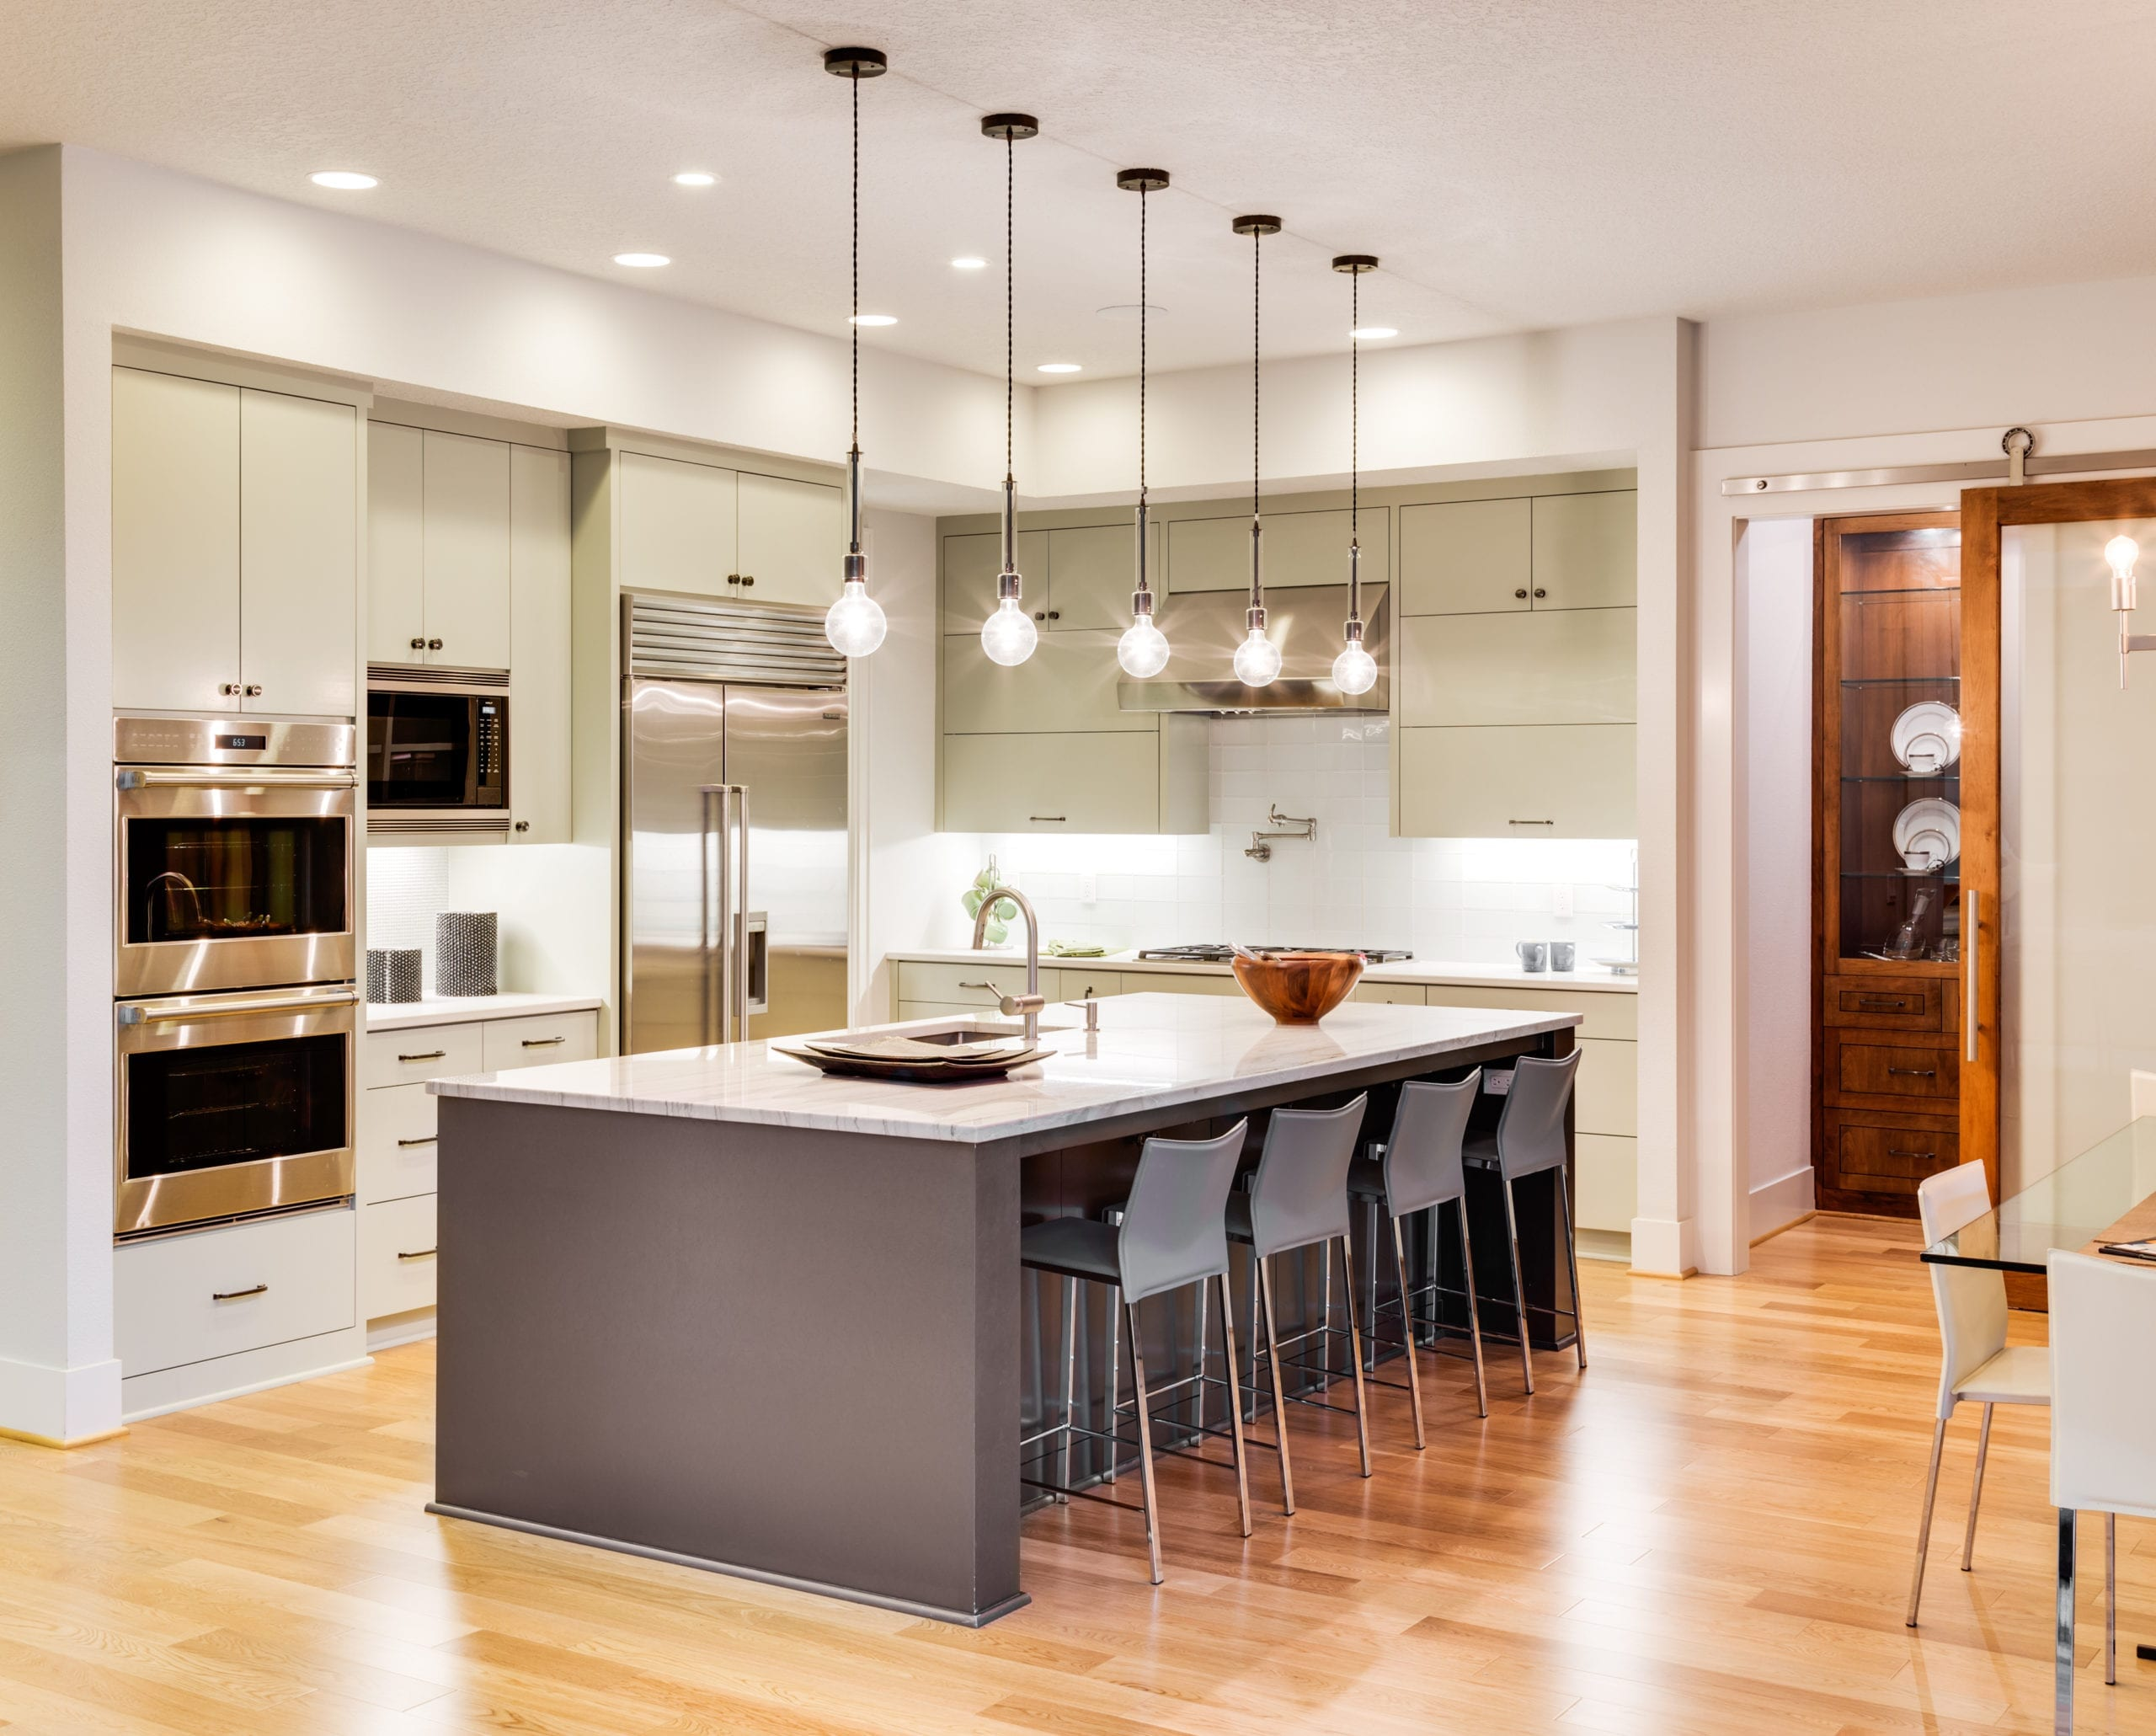 Improve Your Home's Efficiency